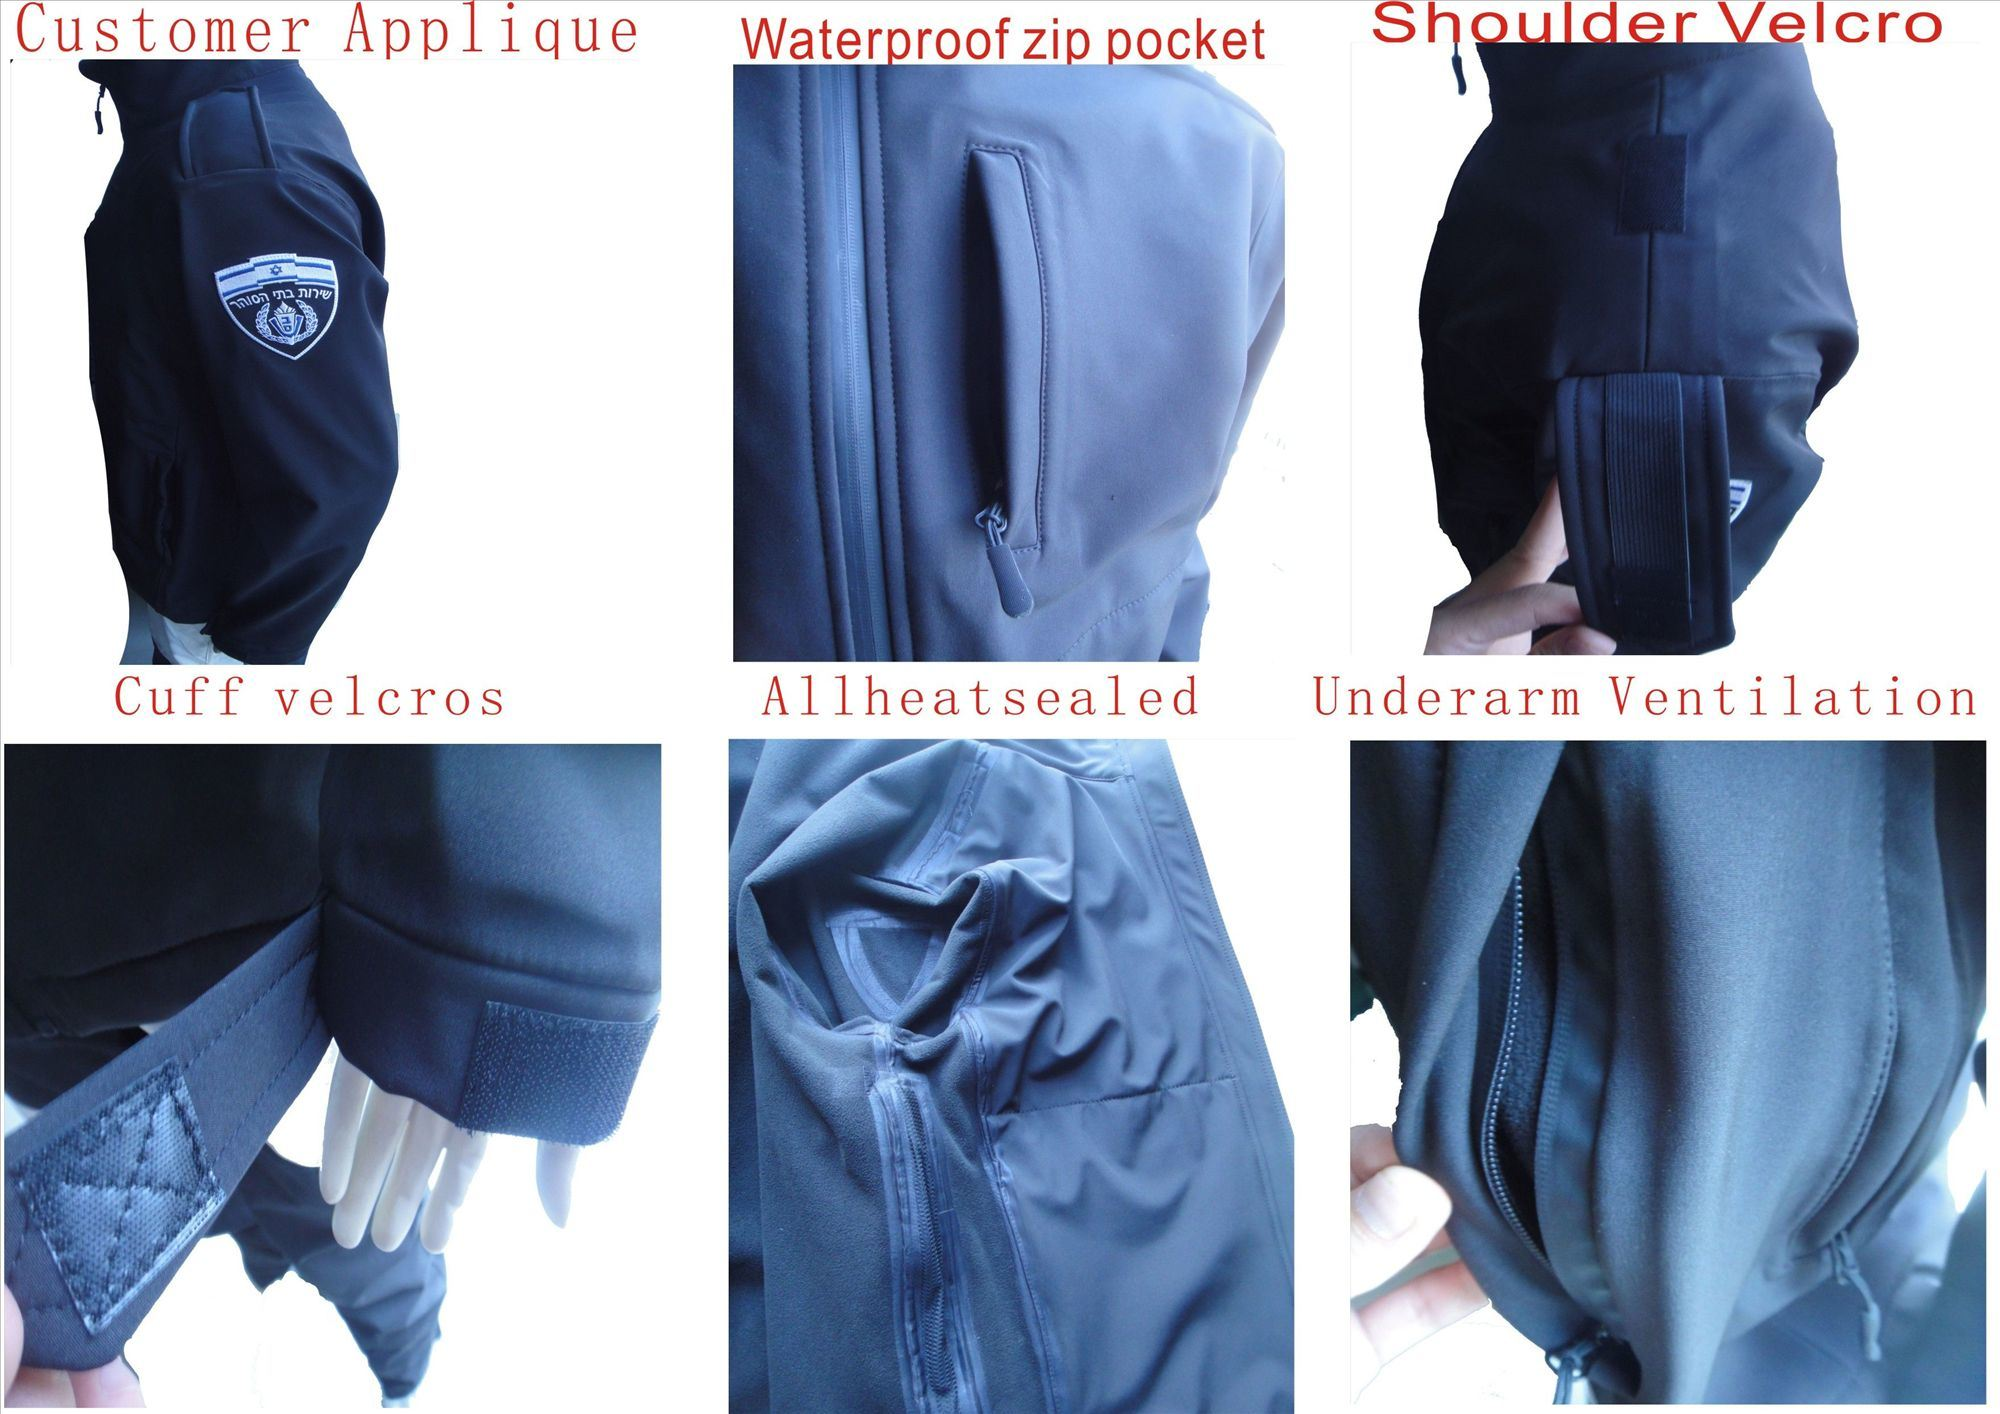 Israel Policemen Waterproof Breathable High Quality Softshell Jacket